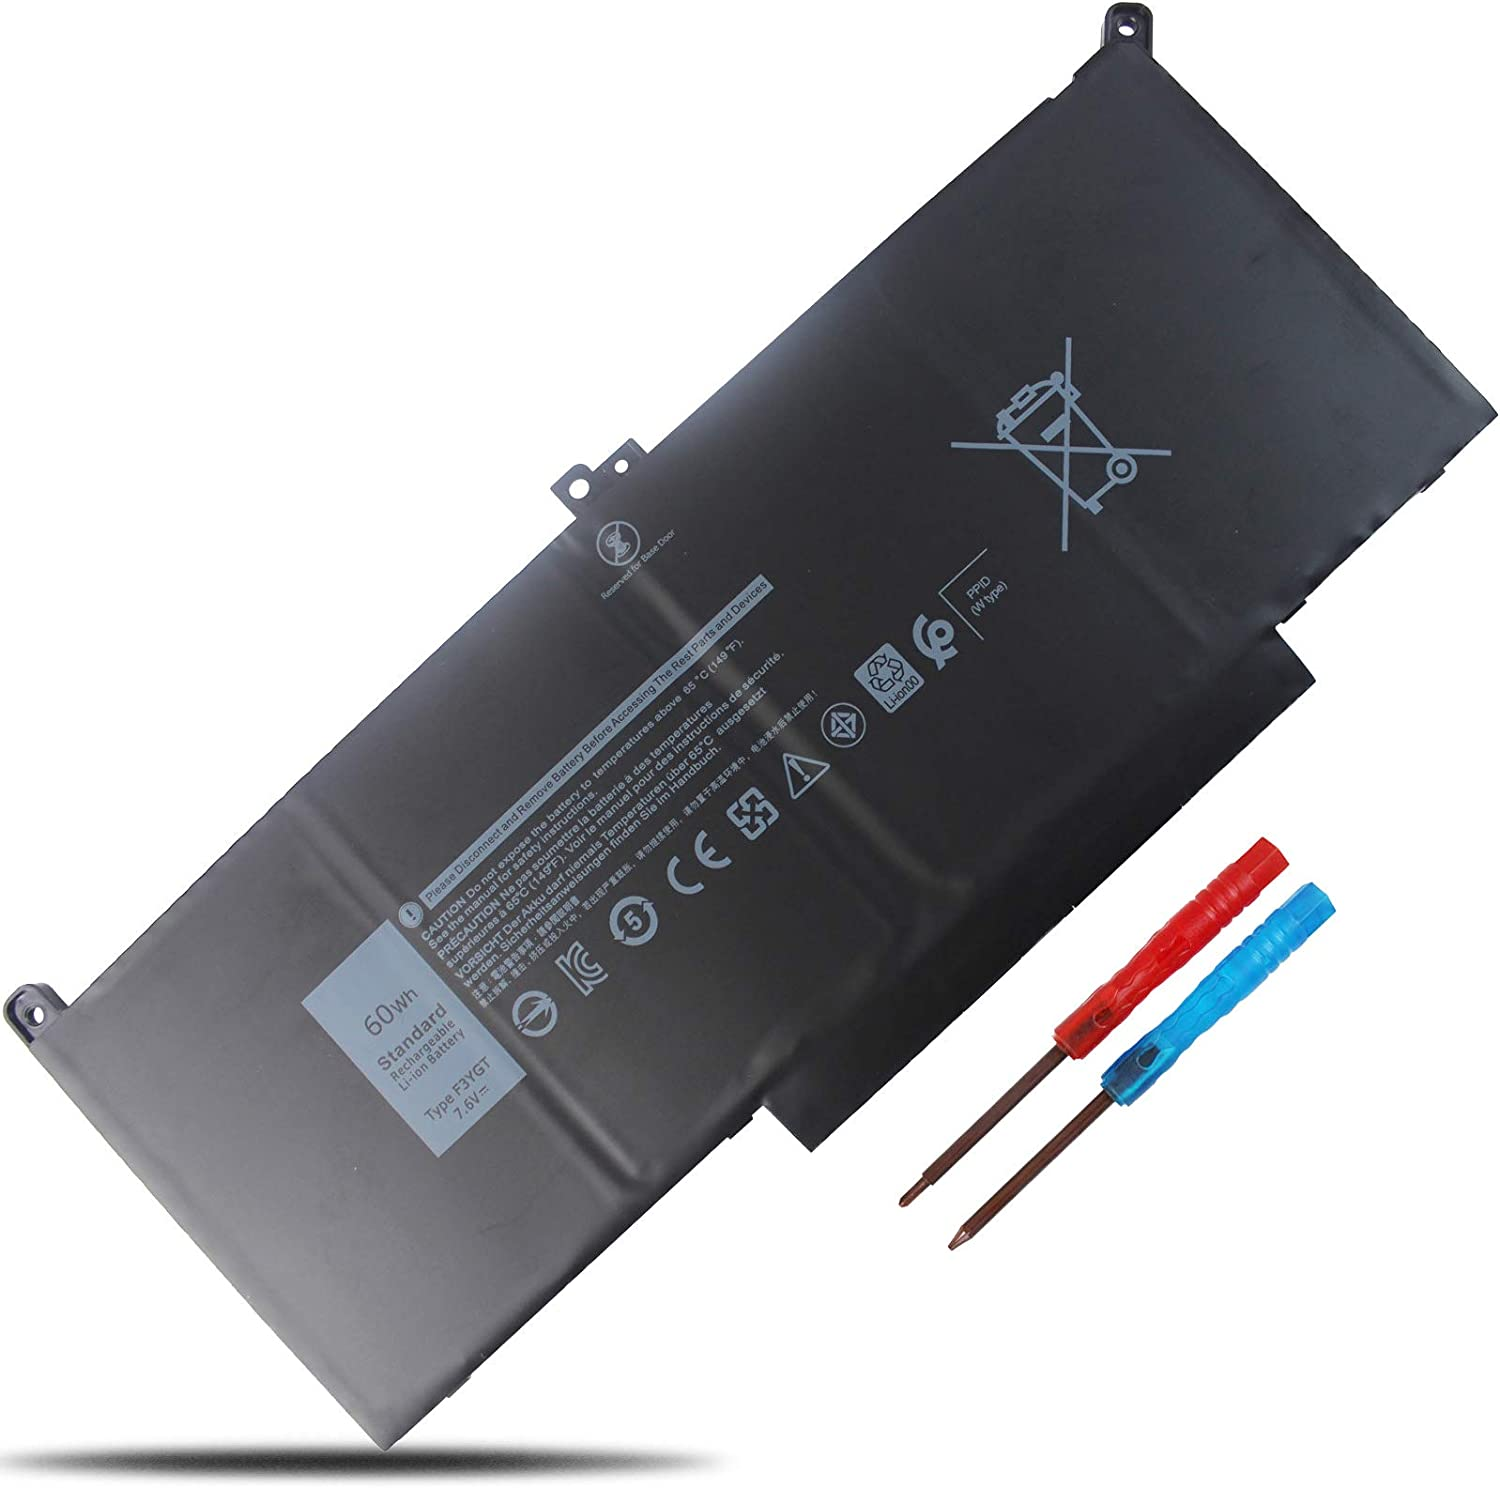 LXHY F3YGT 60Wh 7.6V, Laptop Battery Compatible with Dell Latitude 12 7000 12 7280 12 7290 13 7000 13 7390 14 7000 14 7480 Latitude 7490 (i5-8350U FHD), 4 Cells Replacement DM3WC 2X39G 451-BBYE